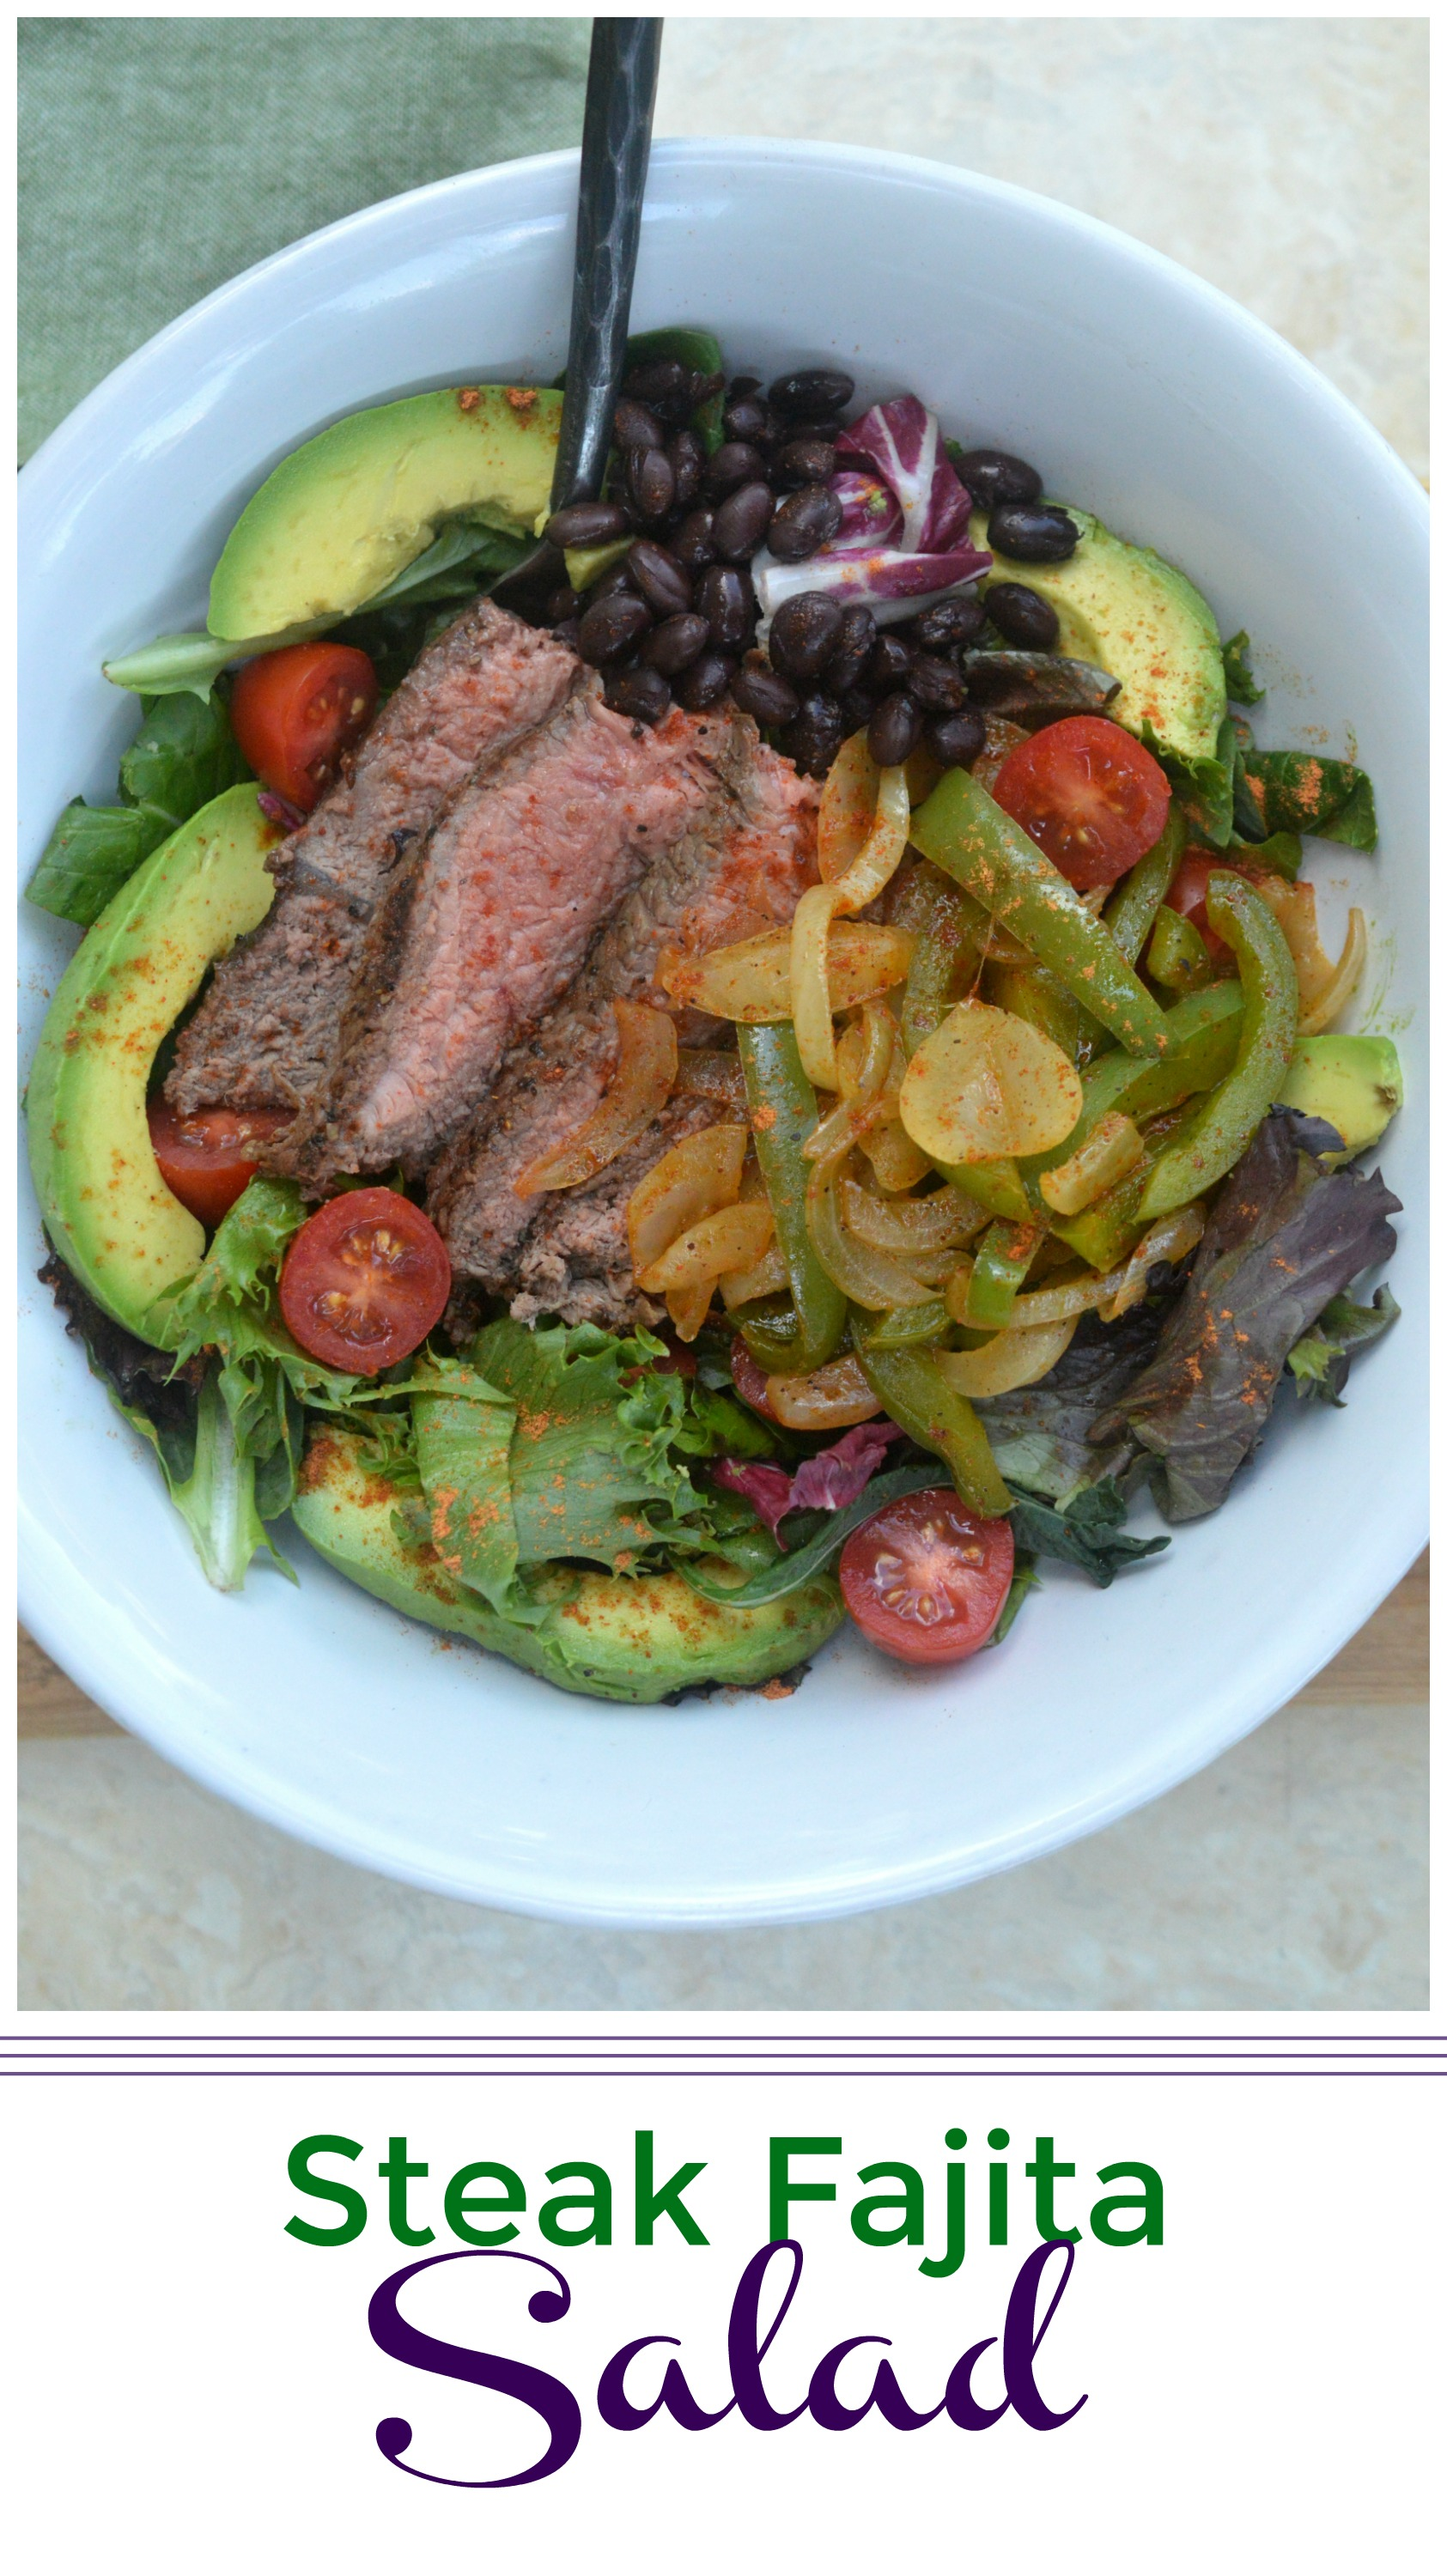 Steak Fajita Salad Recipe